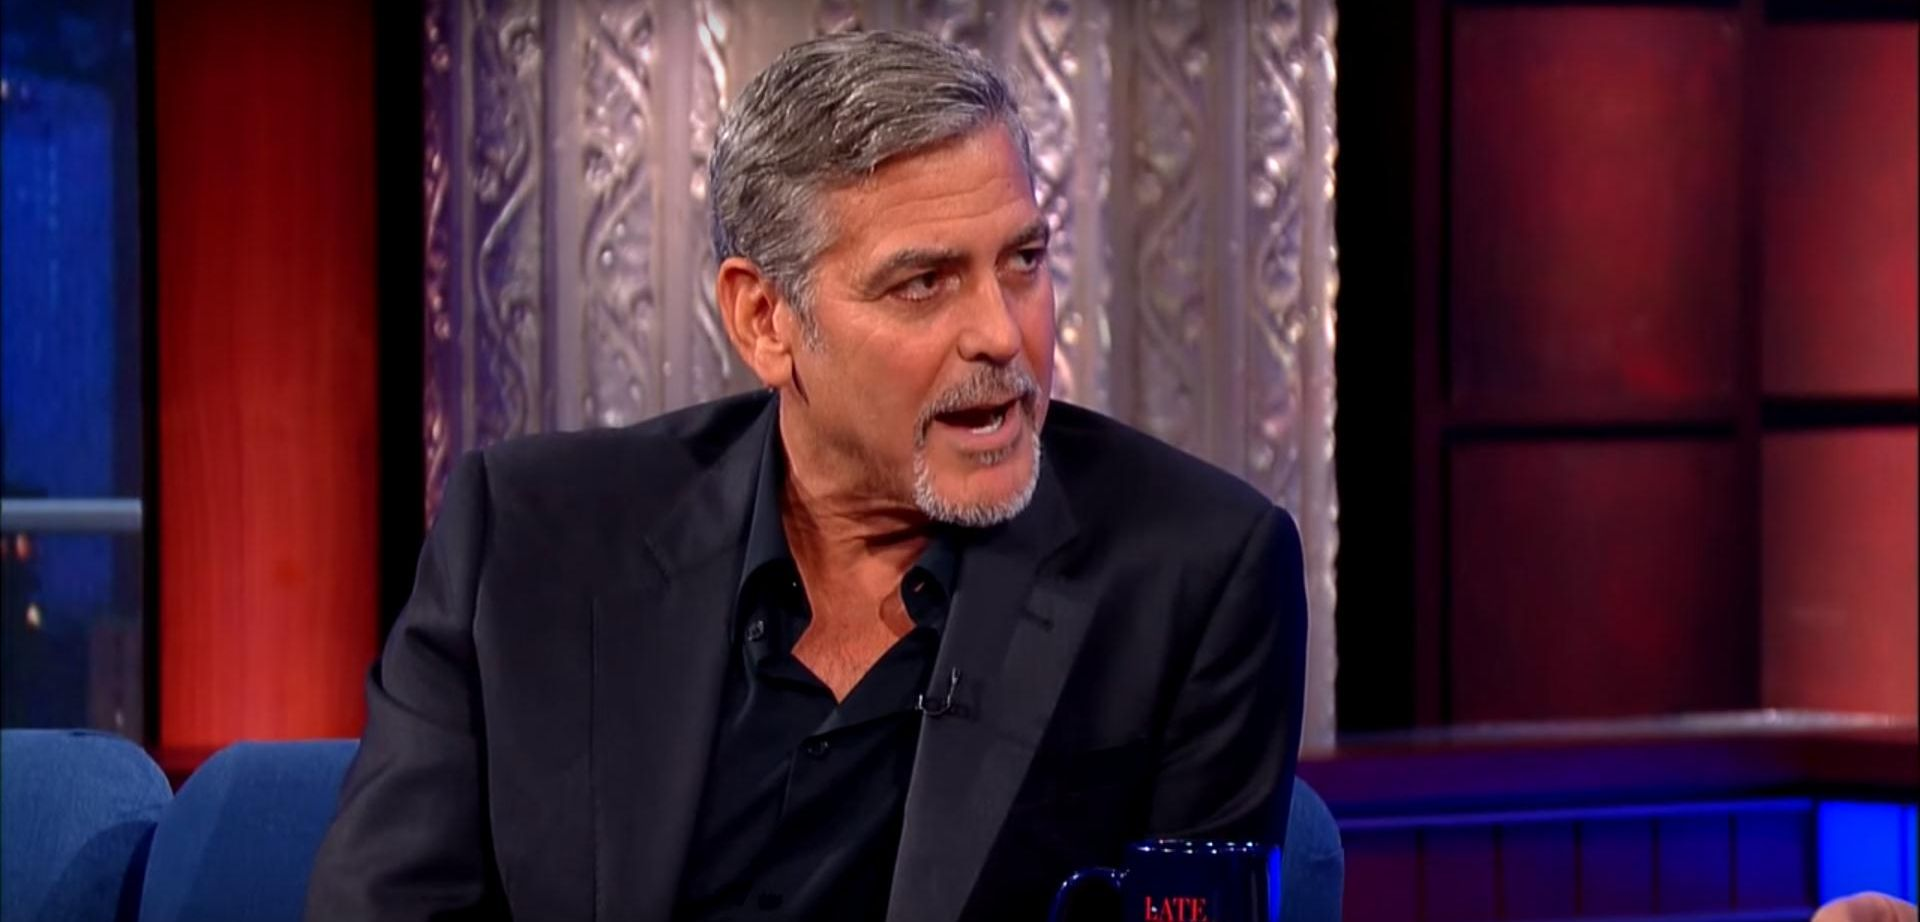 VIDEO: George Clooney i Rihanna odigrali 'Never Have I Ever' i otkrili dio svoje osobnosti